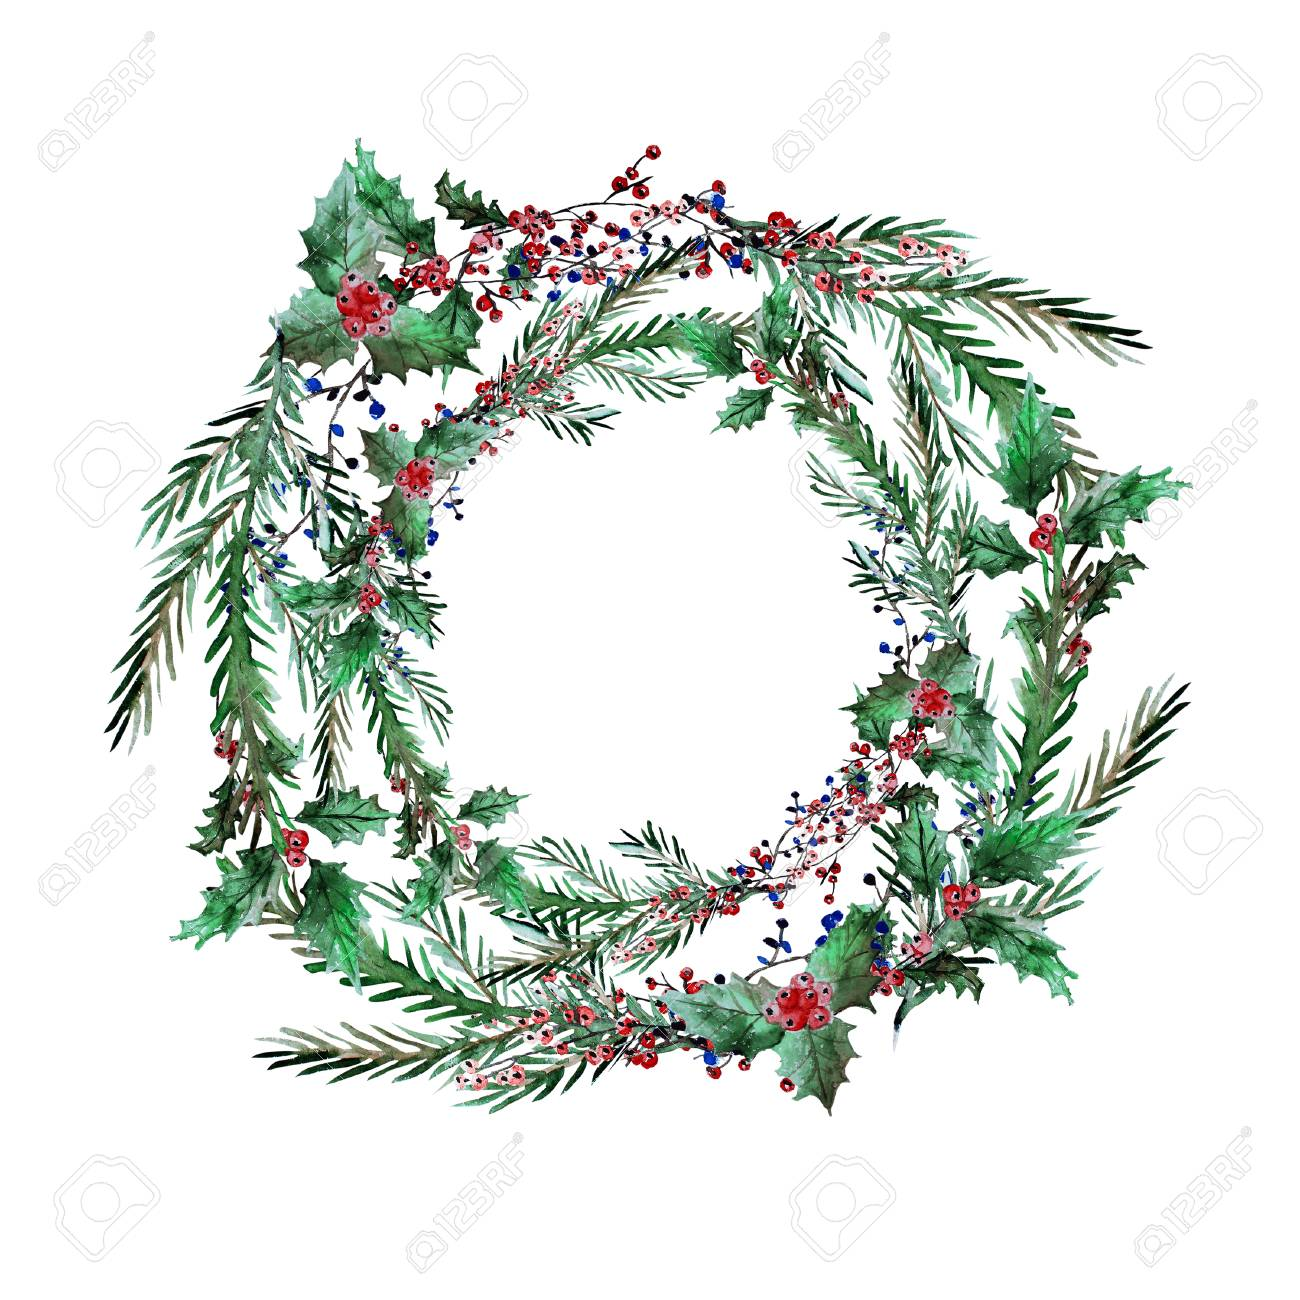 Watercolor Decorative Winter Holidays Wreath With Holly Berries Stock Photo Picture And Royalty Free Image Image 88641982